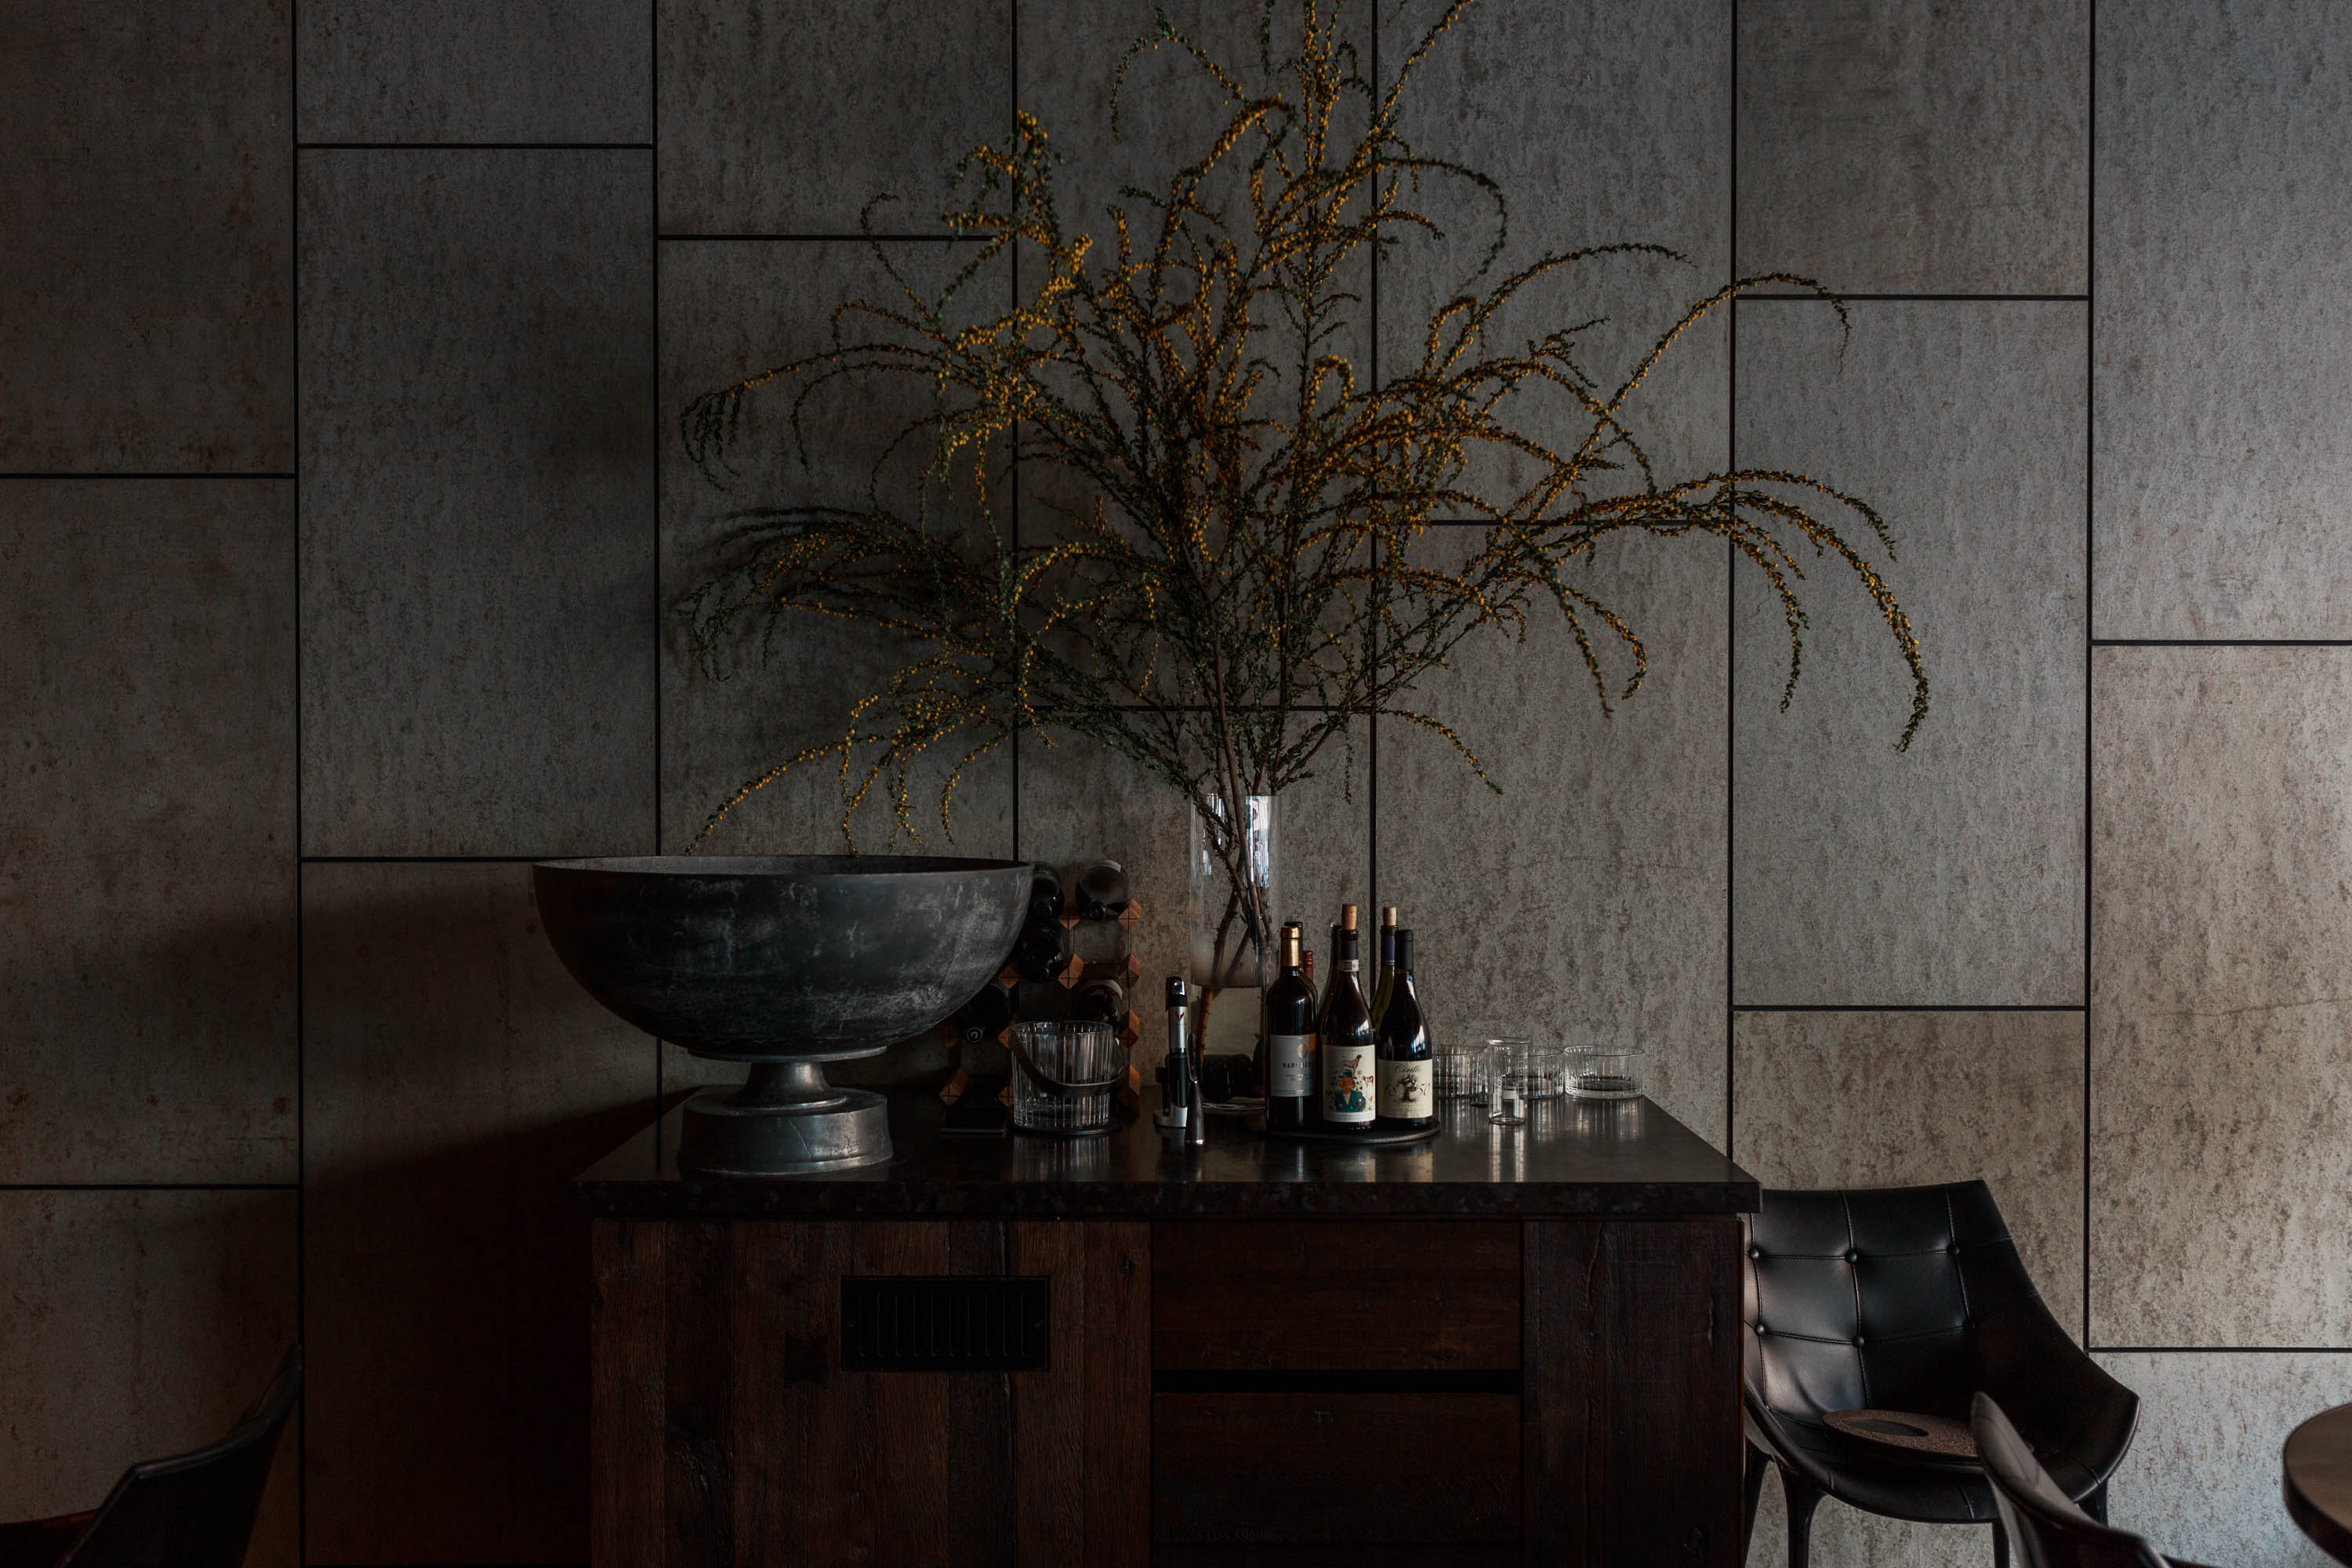 estelle-scott-pickett-melbourne-food-photography-decoration